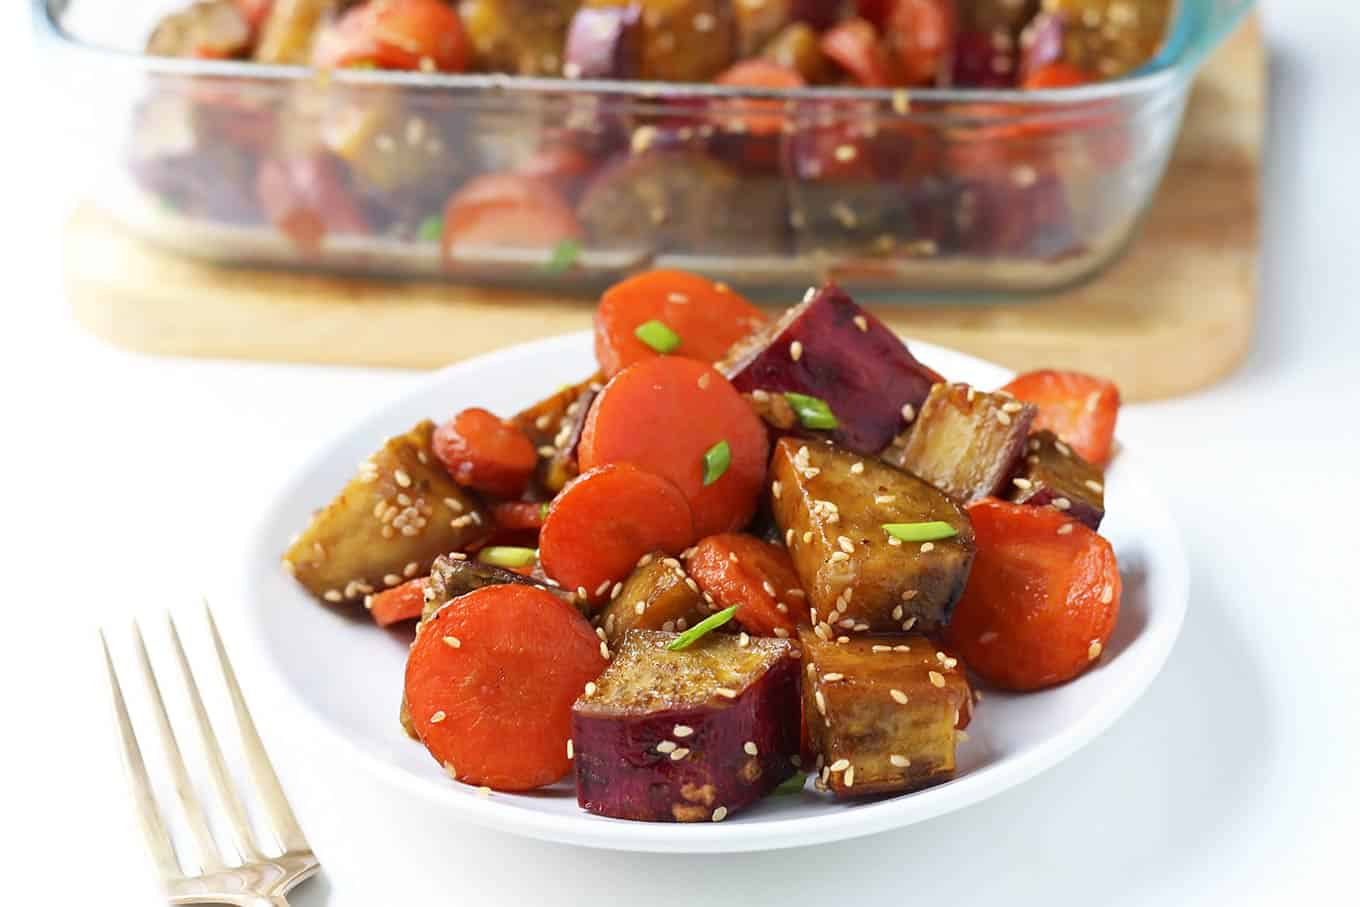 Oven roasted sweet potatoes and carrots with a honey sesame glaze make a delicious healthy vegetable side dish for the holidays or any time of year.